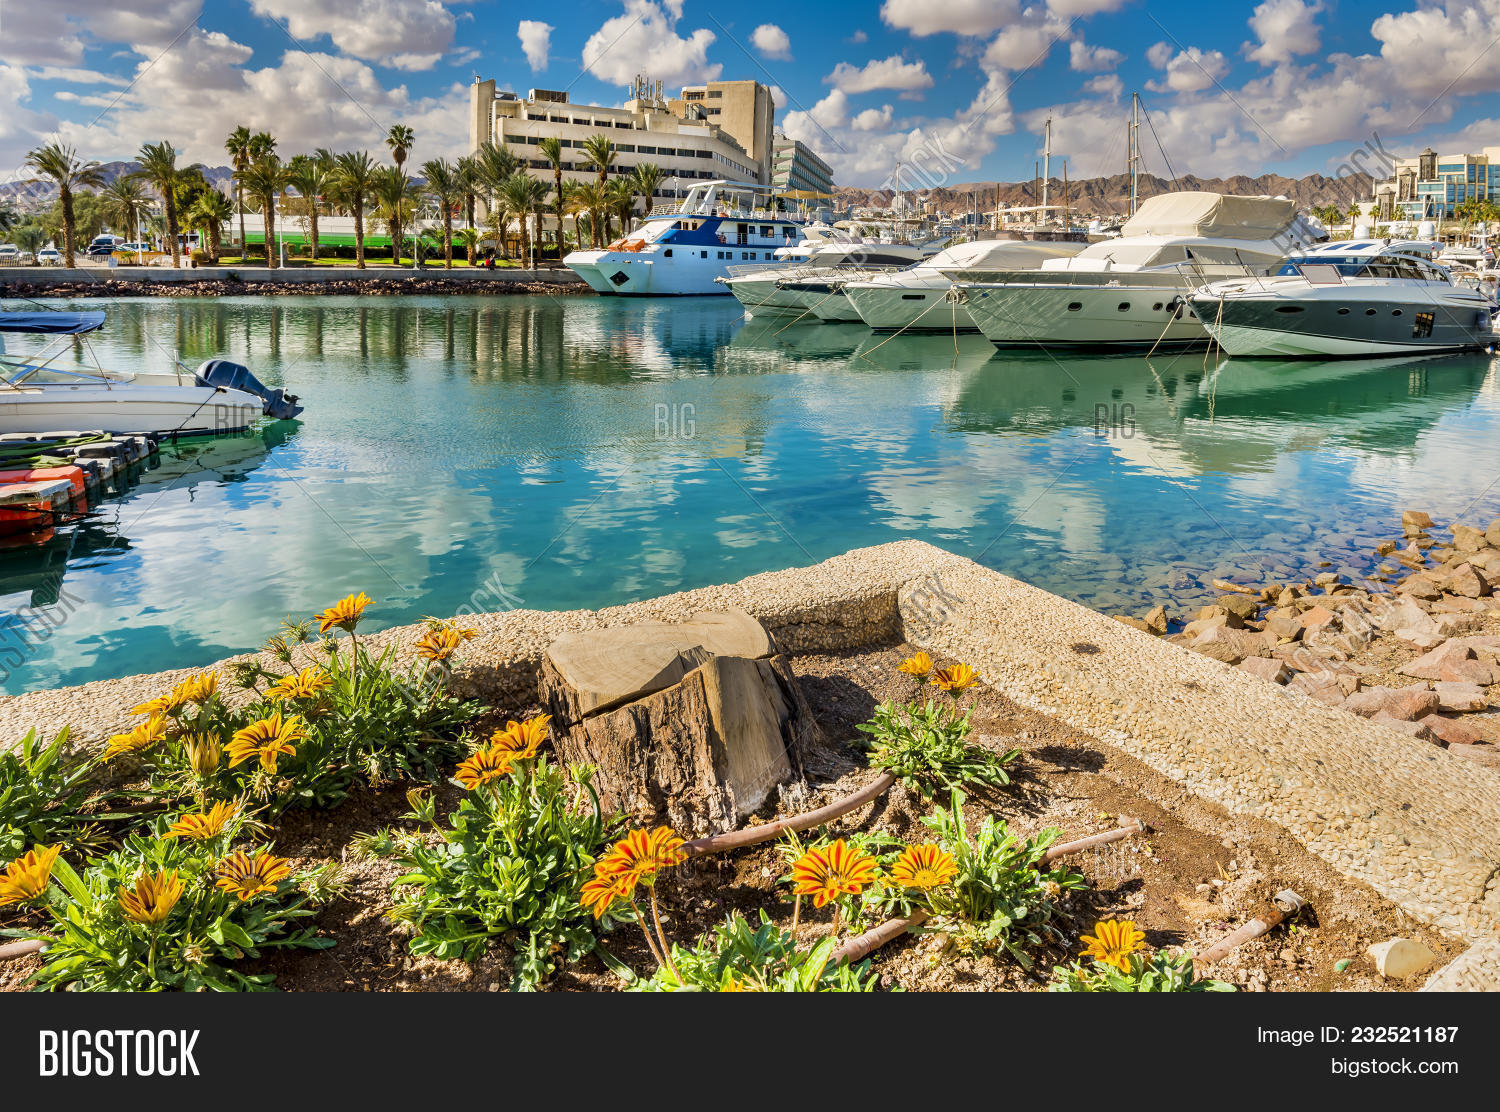 Moored Pleasure Boats Image & Photo (Free Trial) | Bigstock